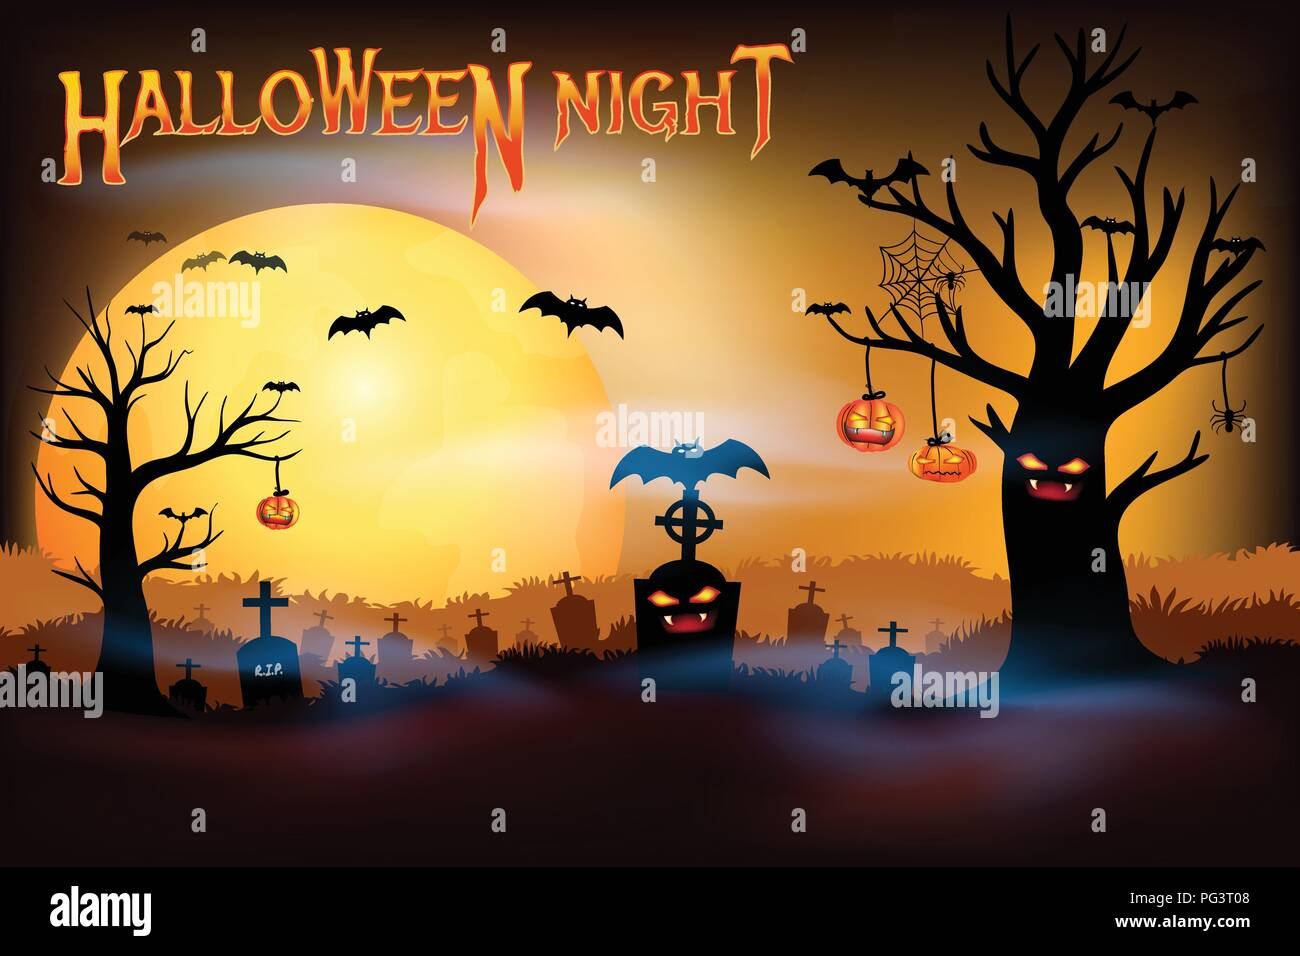 Halloween night concepts, Dark silhouette death tree with cemetery graveyard and creepy bats with full moon background, Halloween Night party with cop - Stock Vector